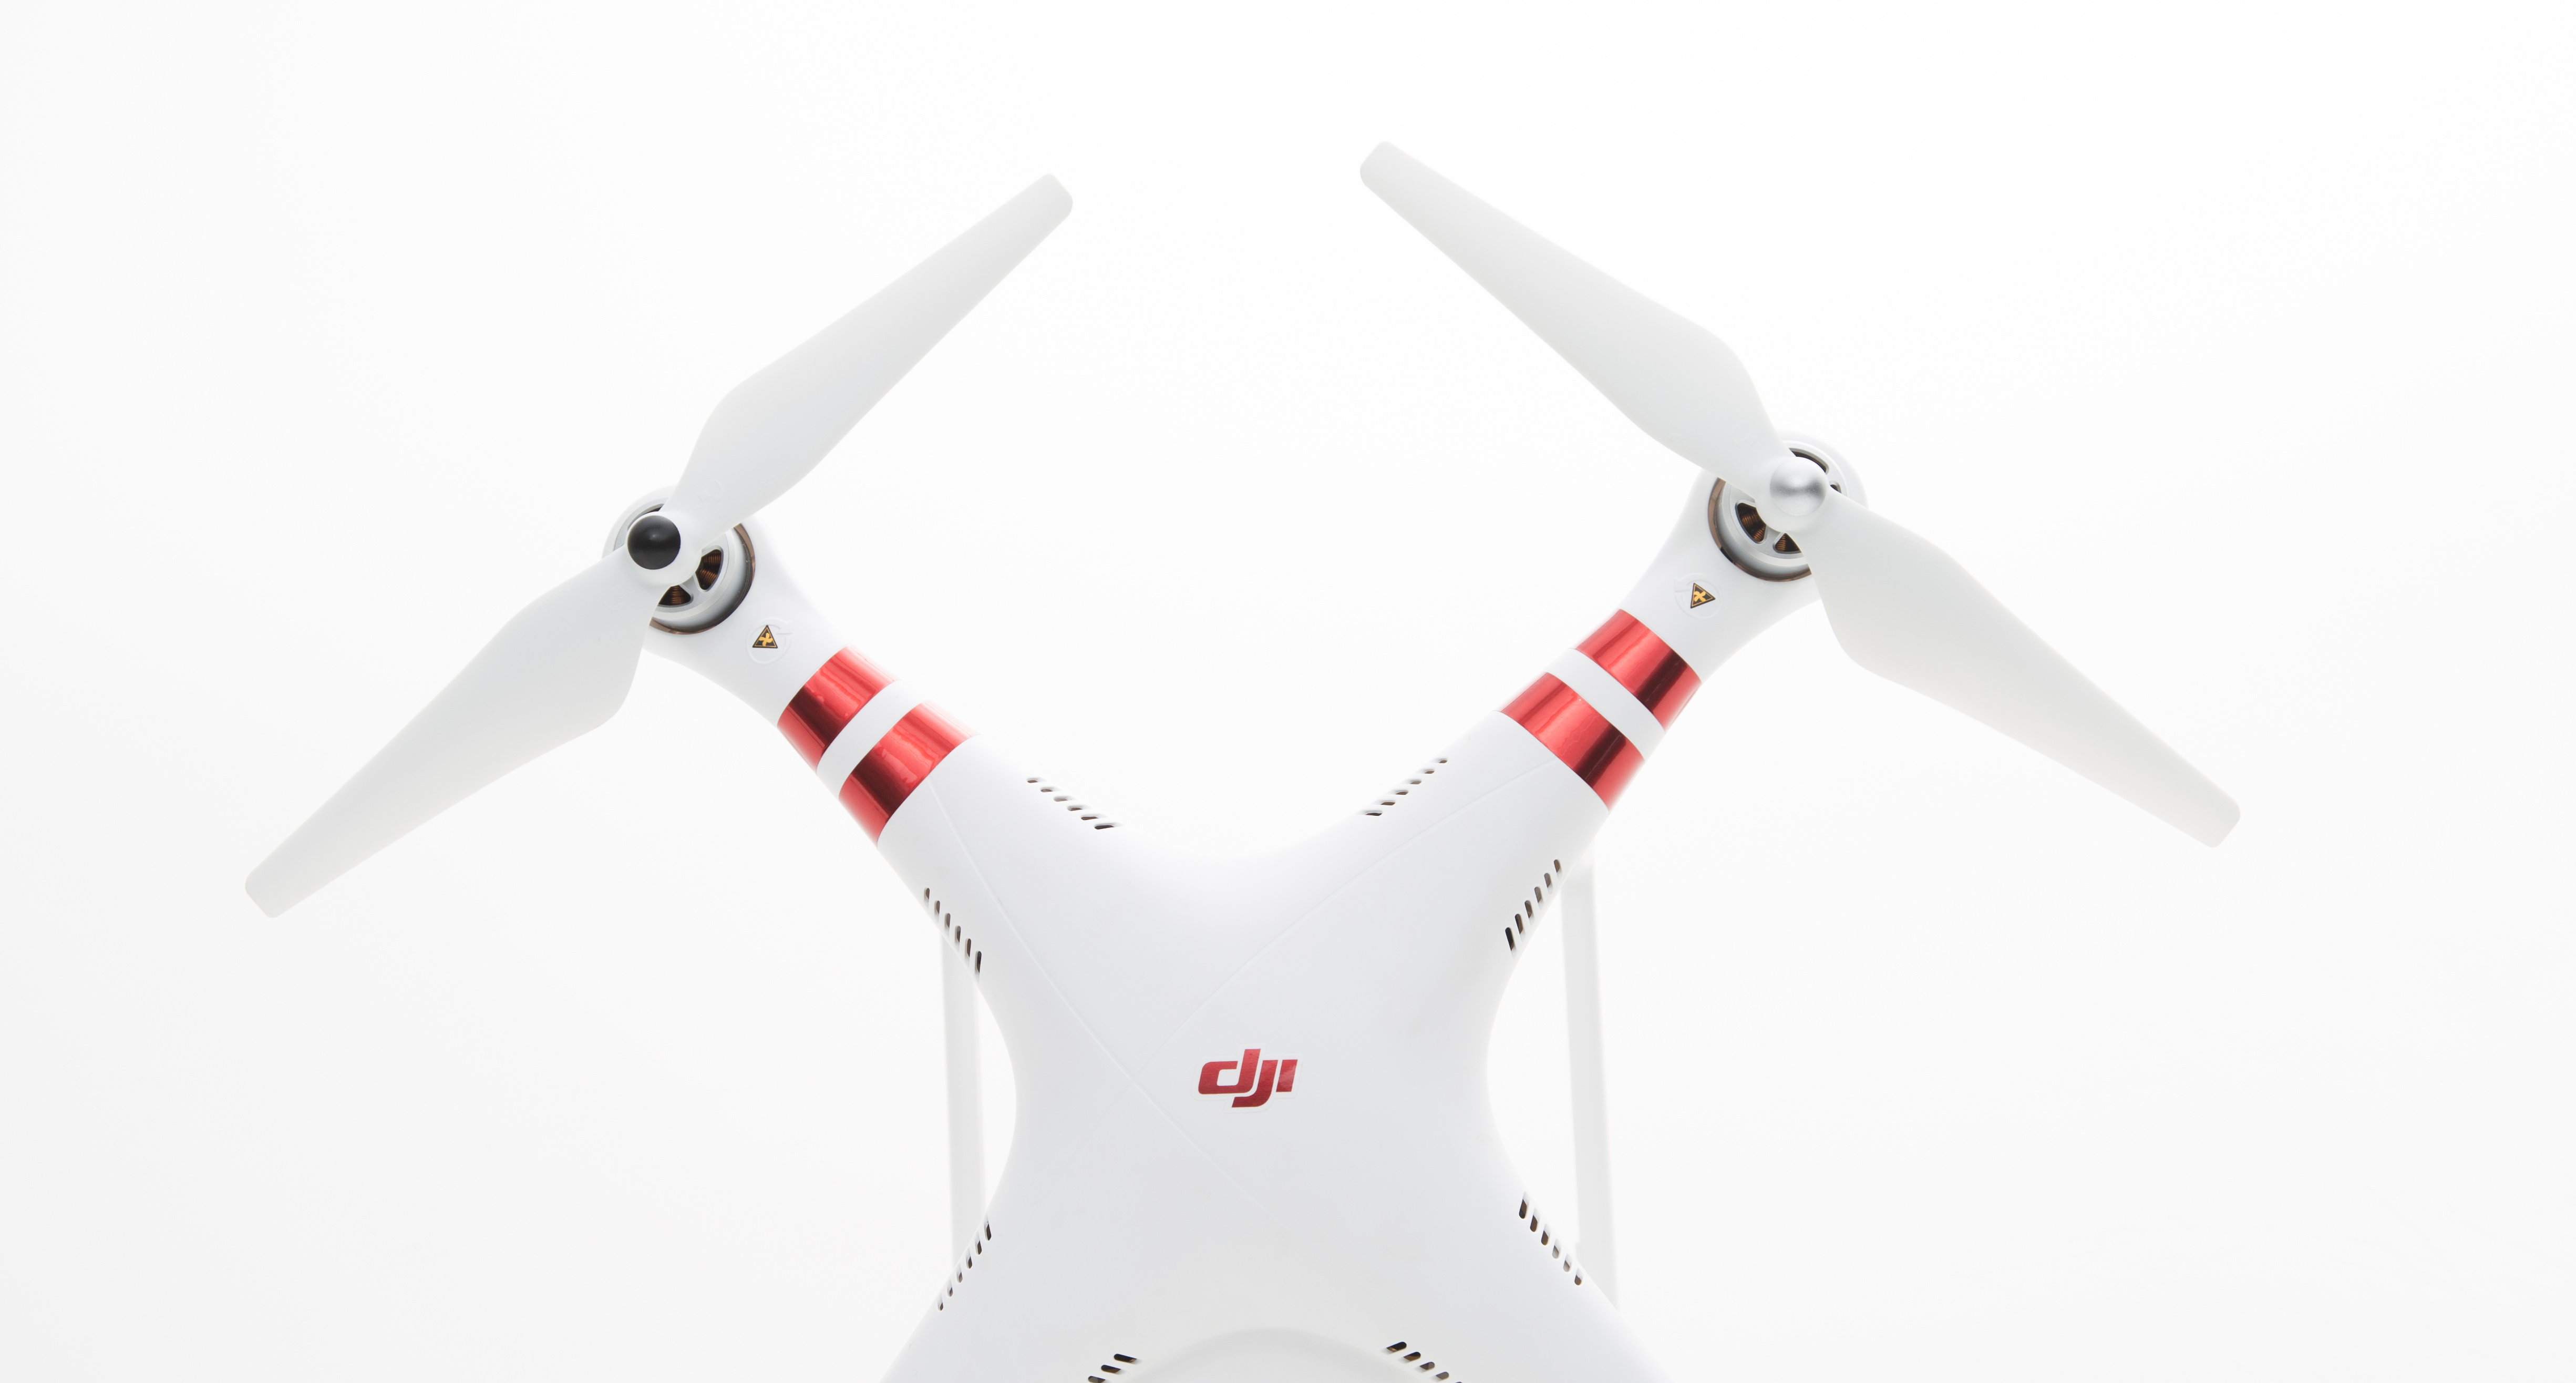 DJI Releases New Mobile Software Development Kit - Unmanned Aerial